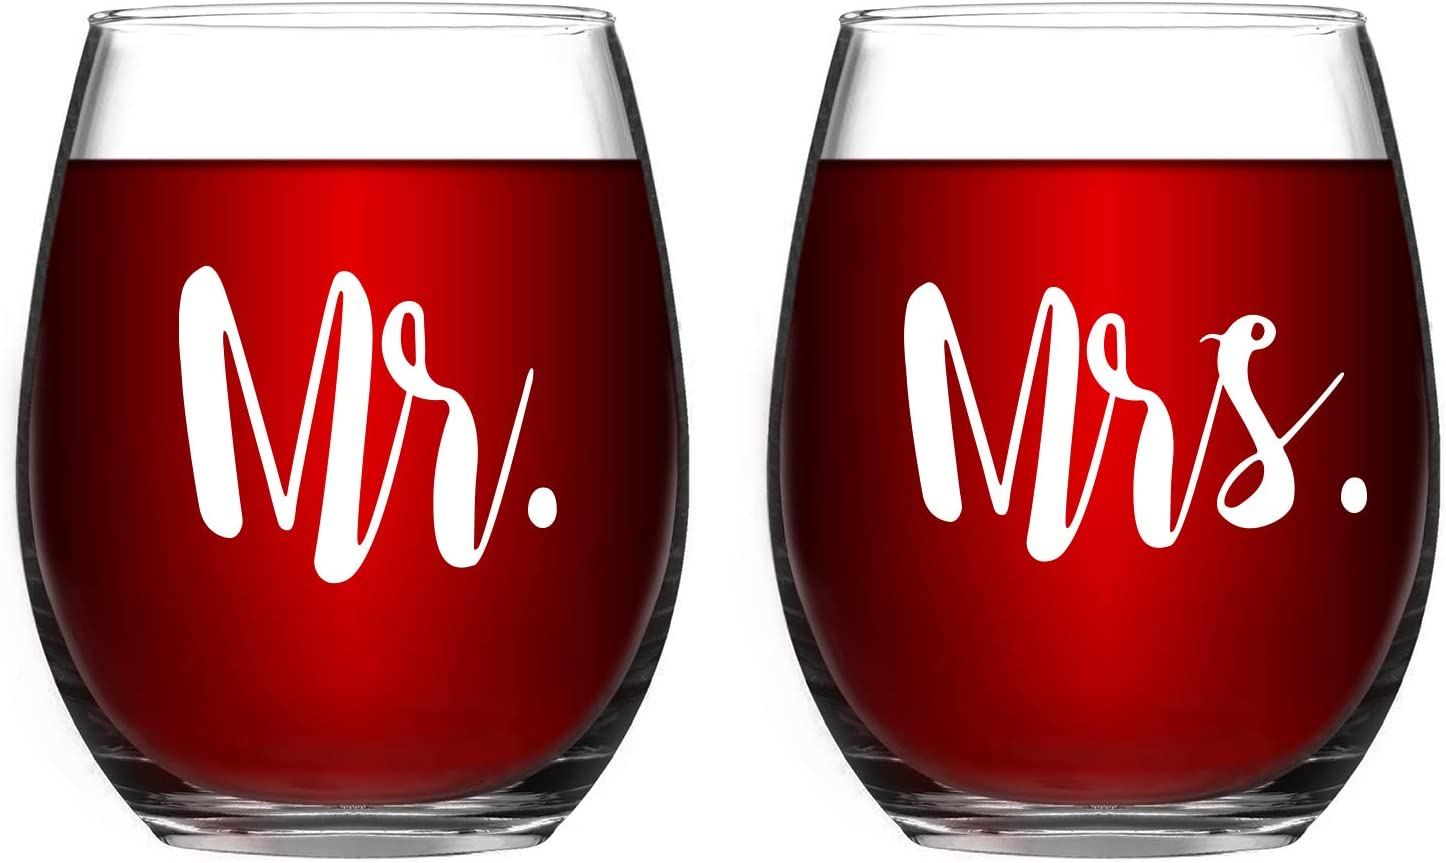 Mr & Mrs Wine Glass Set of 2 Stemless Wine Glasses Engagement Birthday Anniversary Gift for Couples Lovers Parents Man Woman Special Commemorative Gift Perfect Party Decoration 15Oz